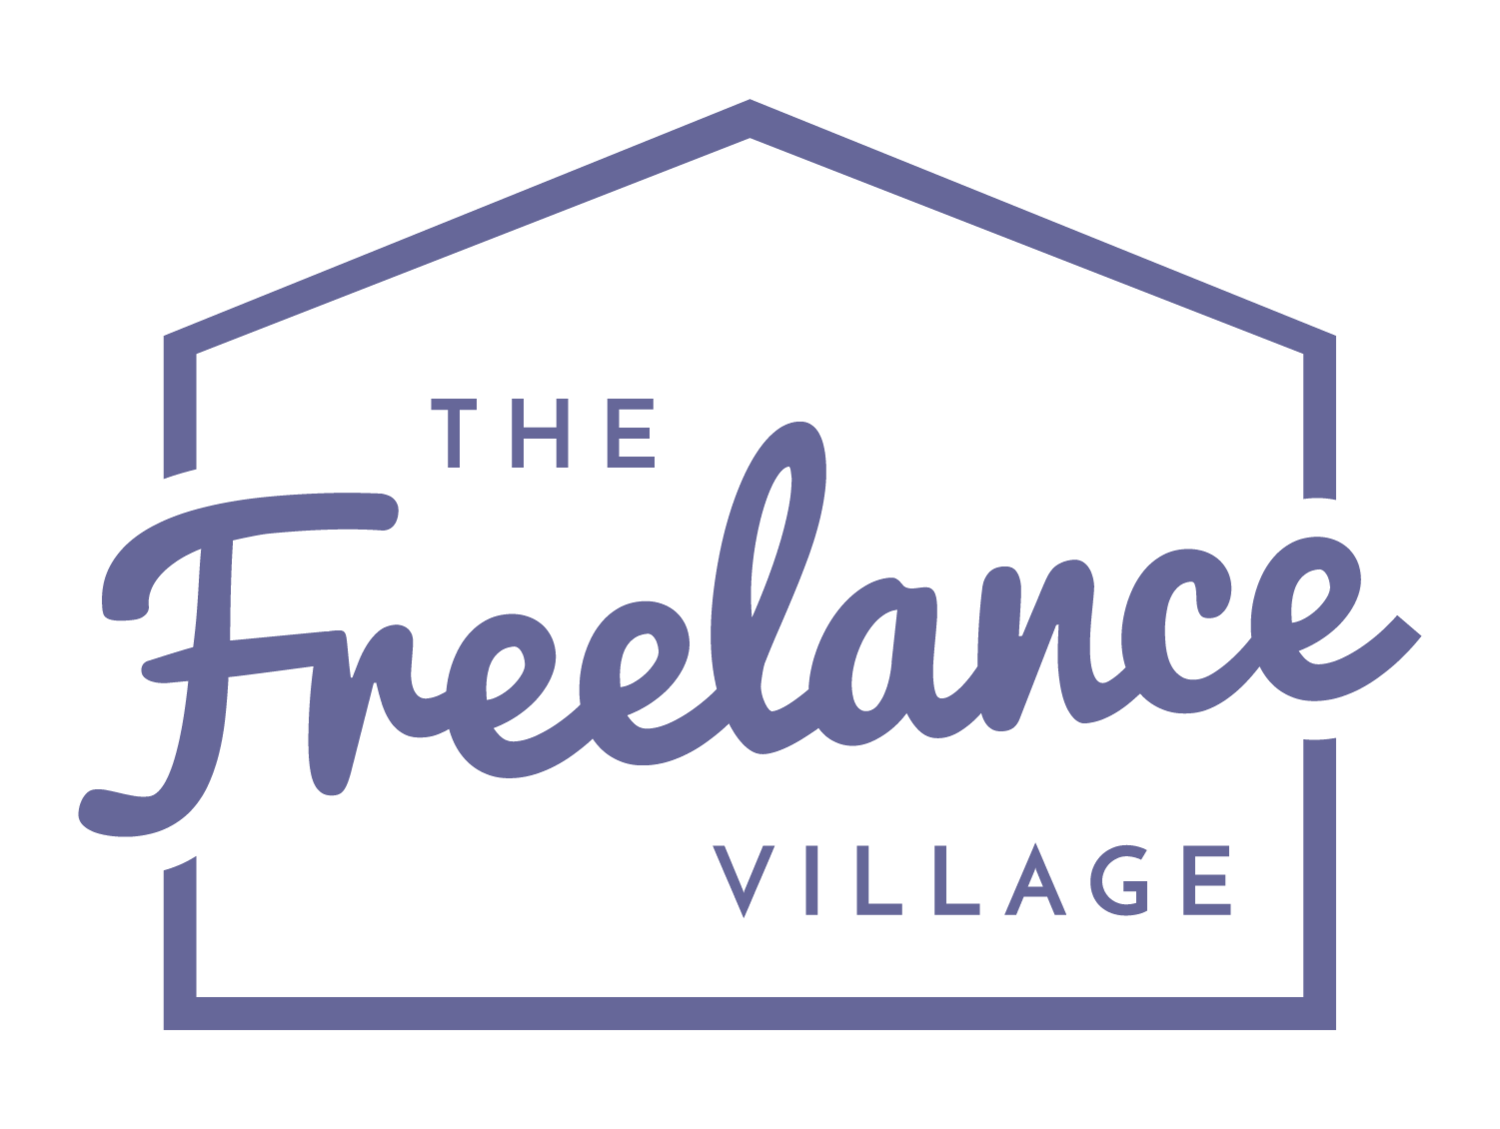 The Freelance Village